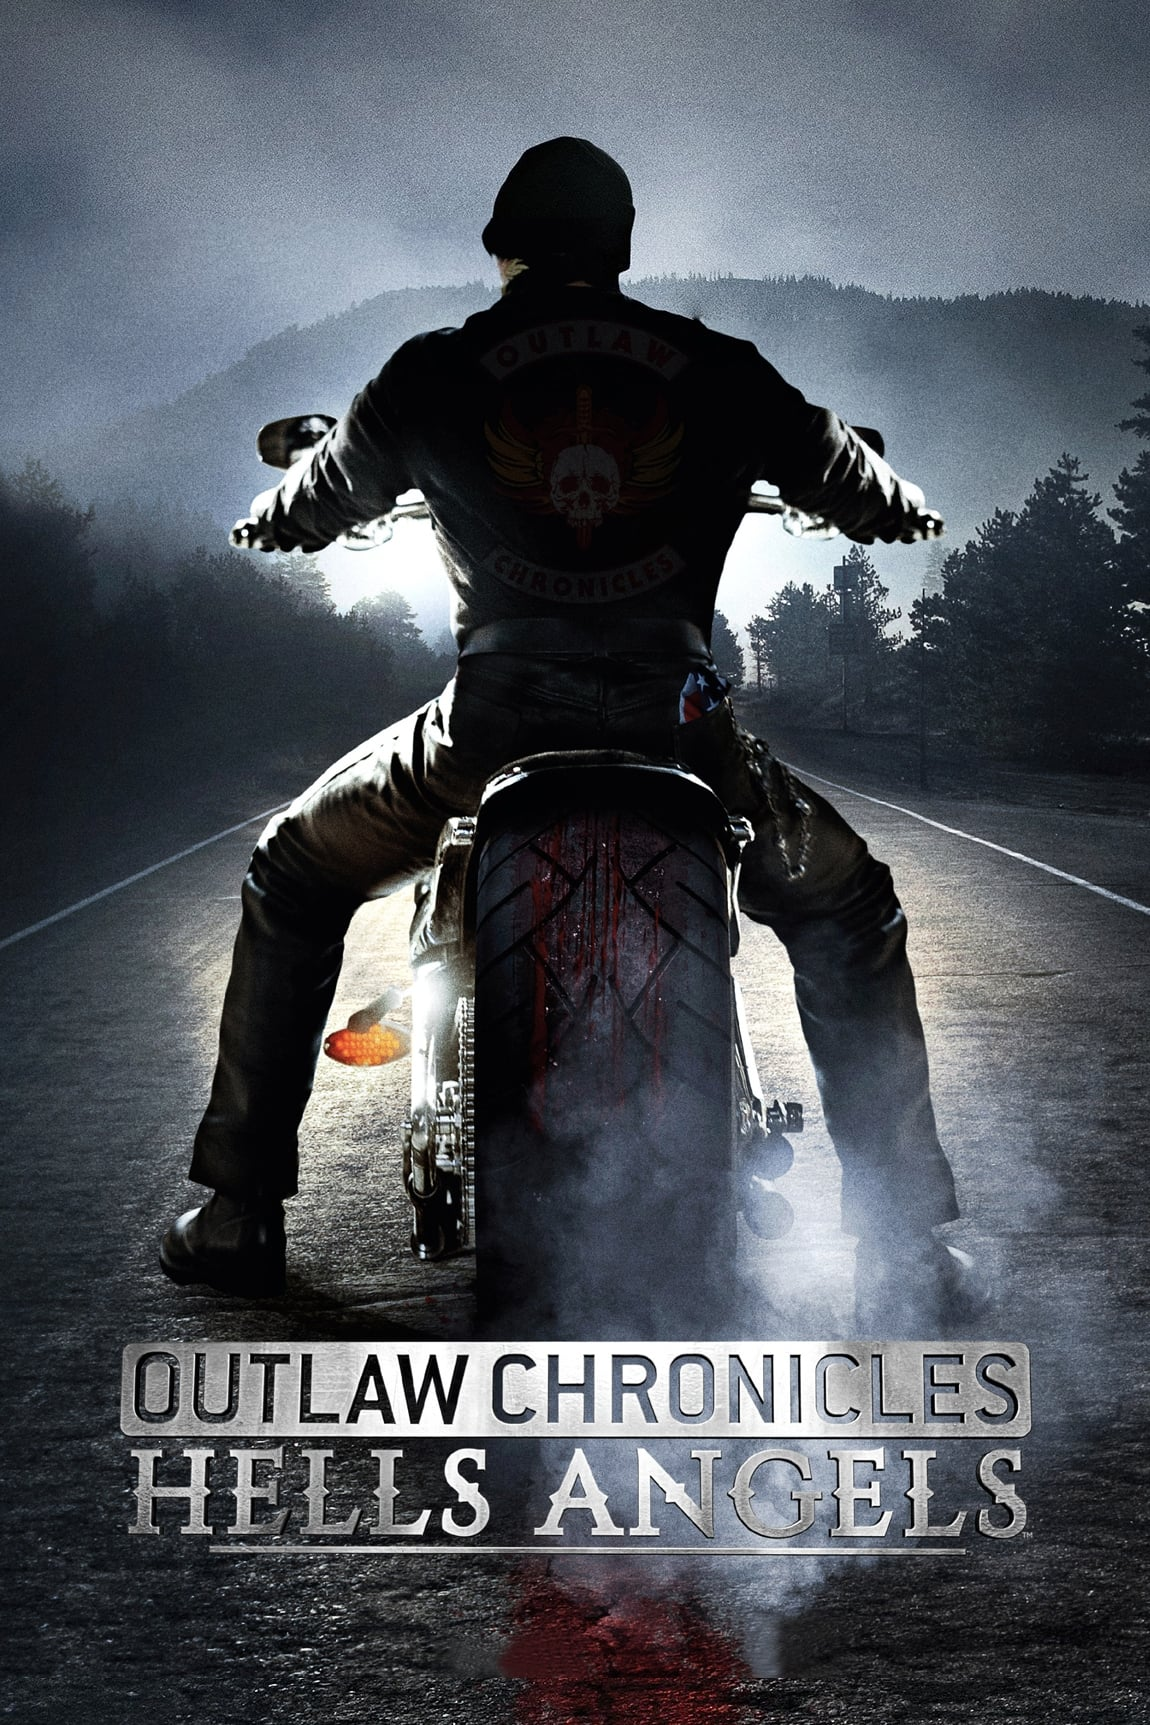 Outlaw Chronicles: Hells Angels TV Shows About Motorcycle